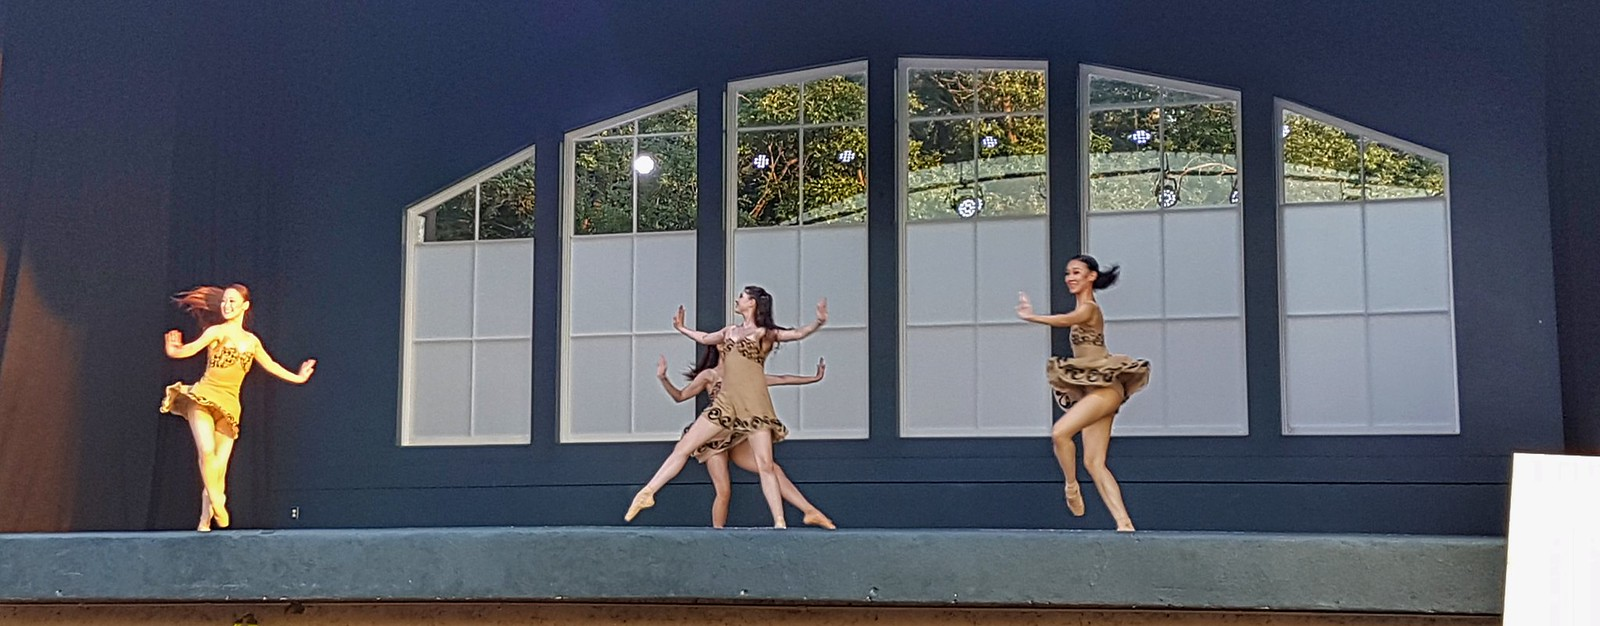 RWB Ballet in the Park 2017 Celts 12